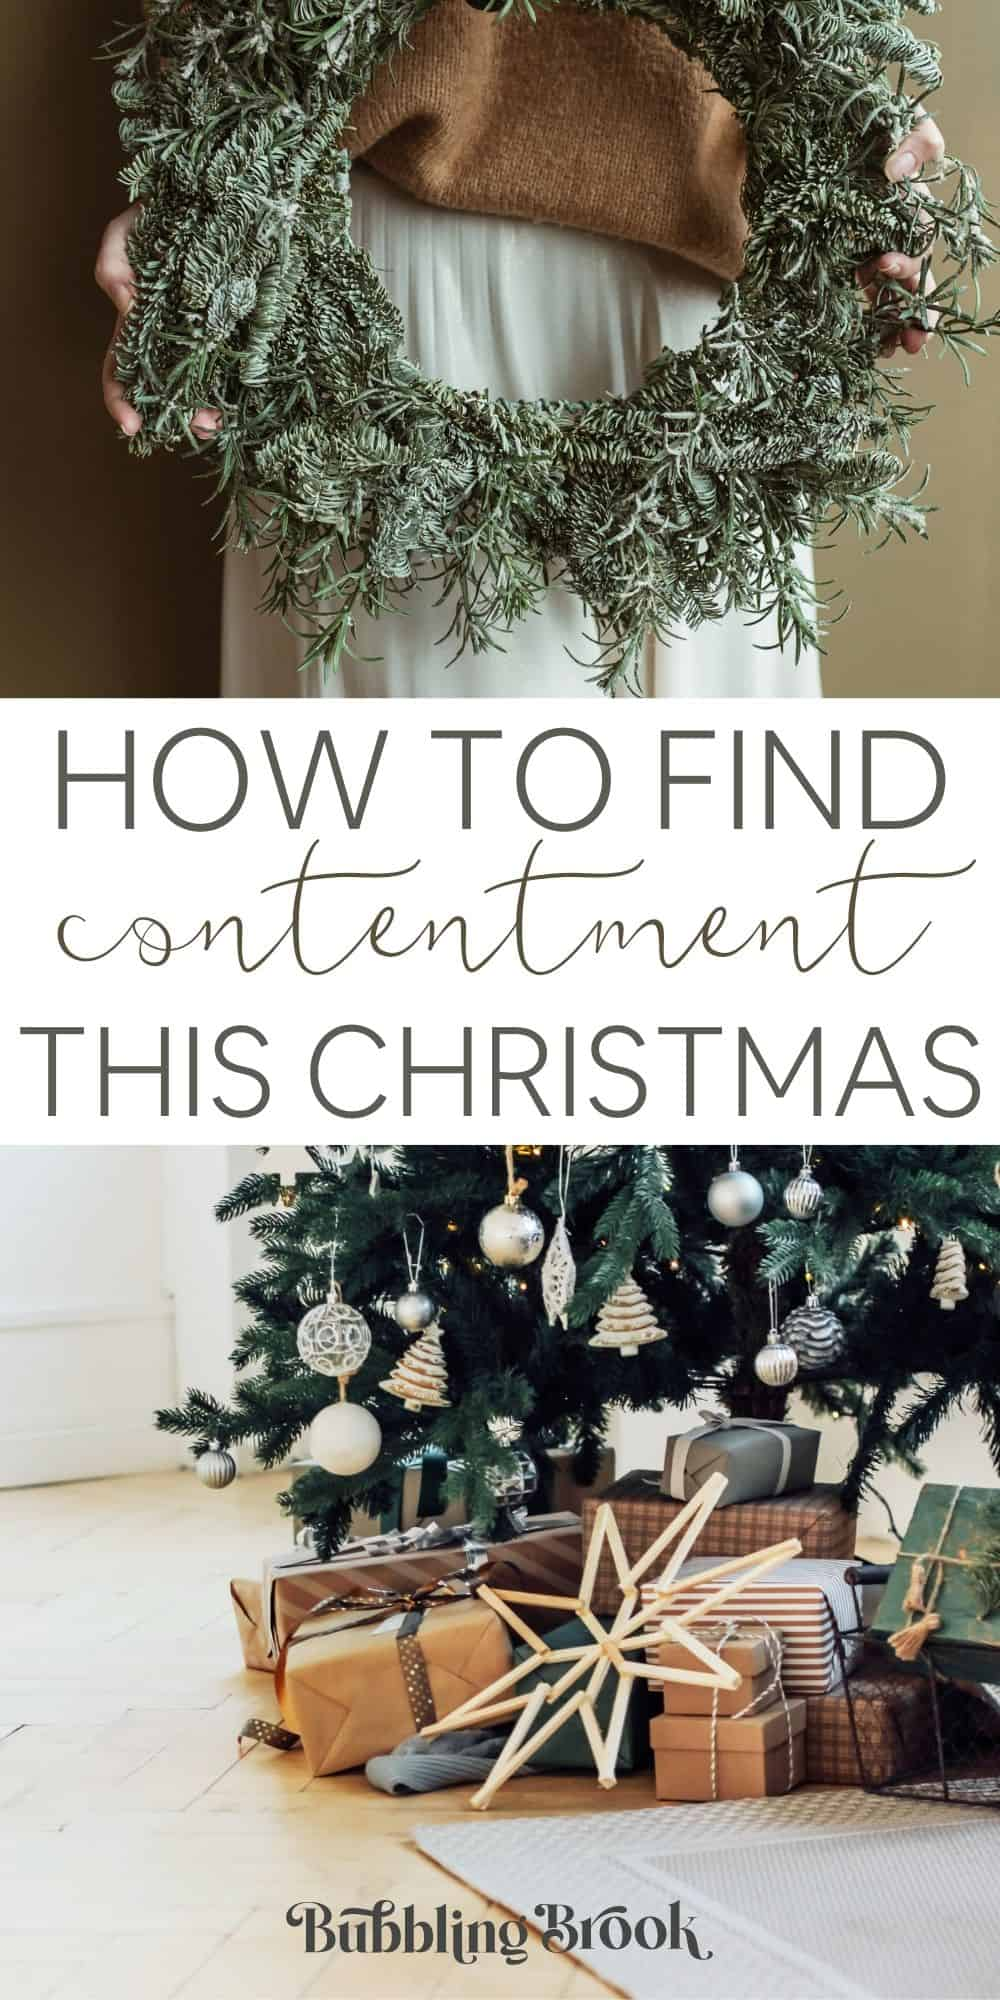 How to find contentment this Christmas